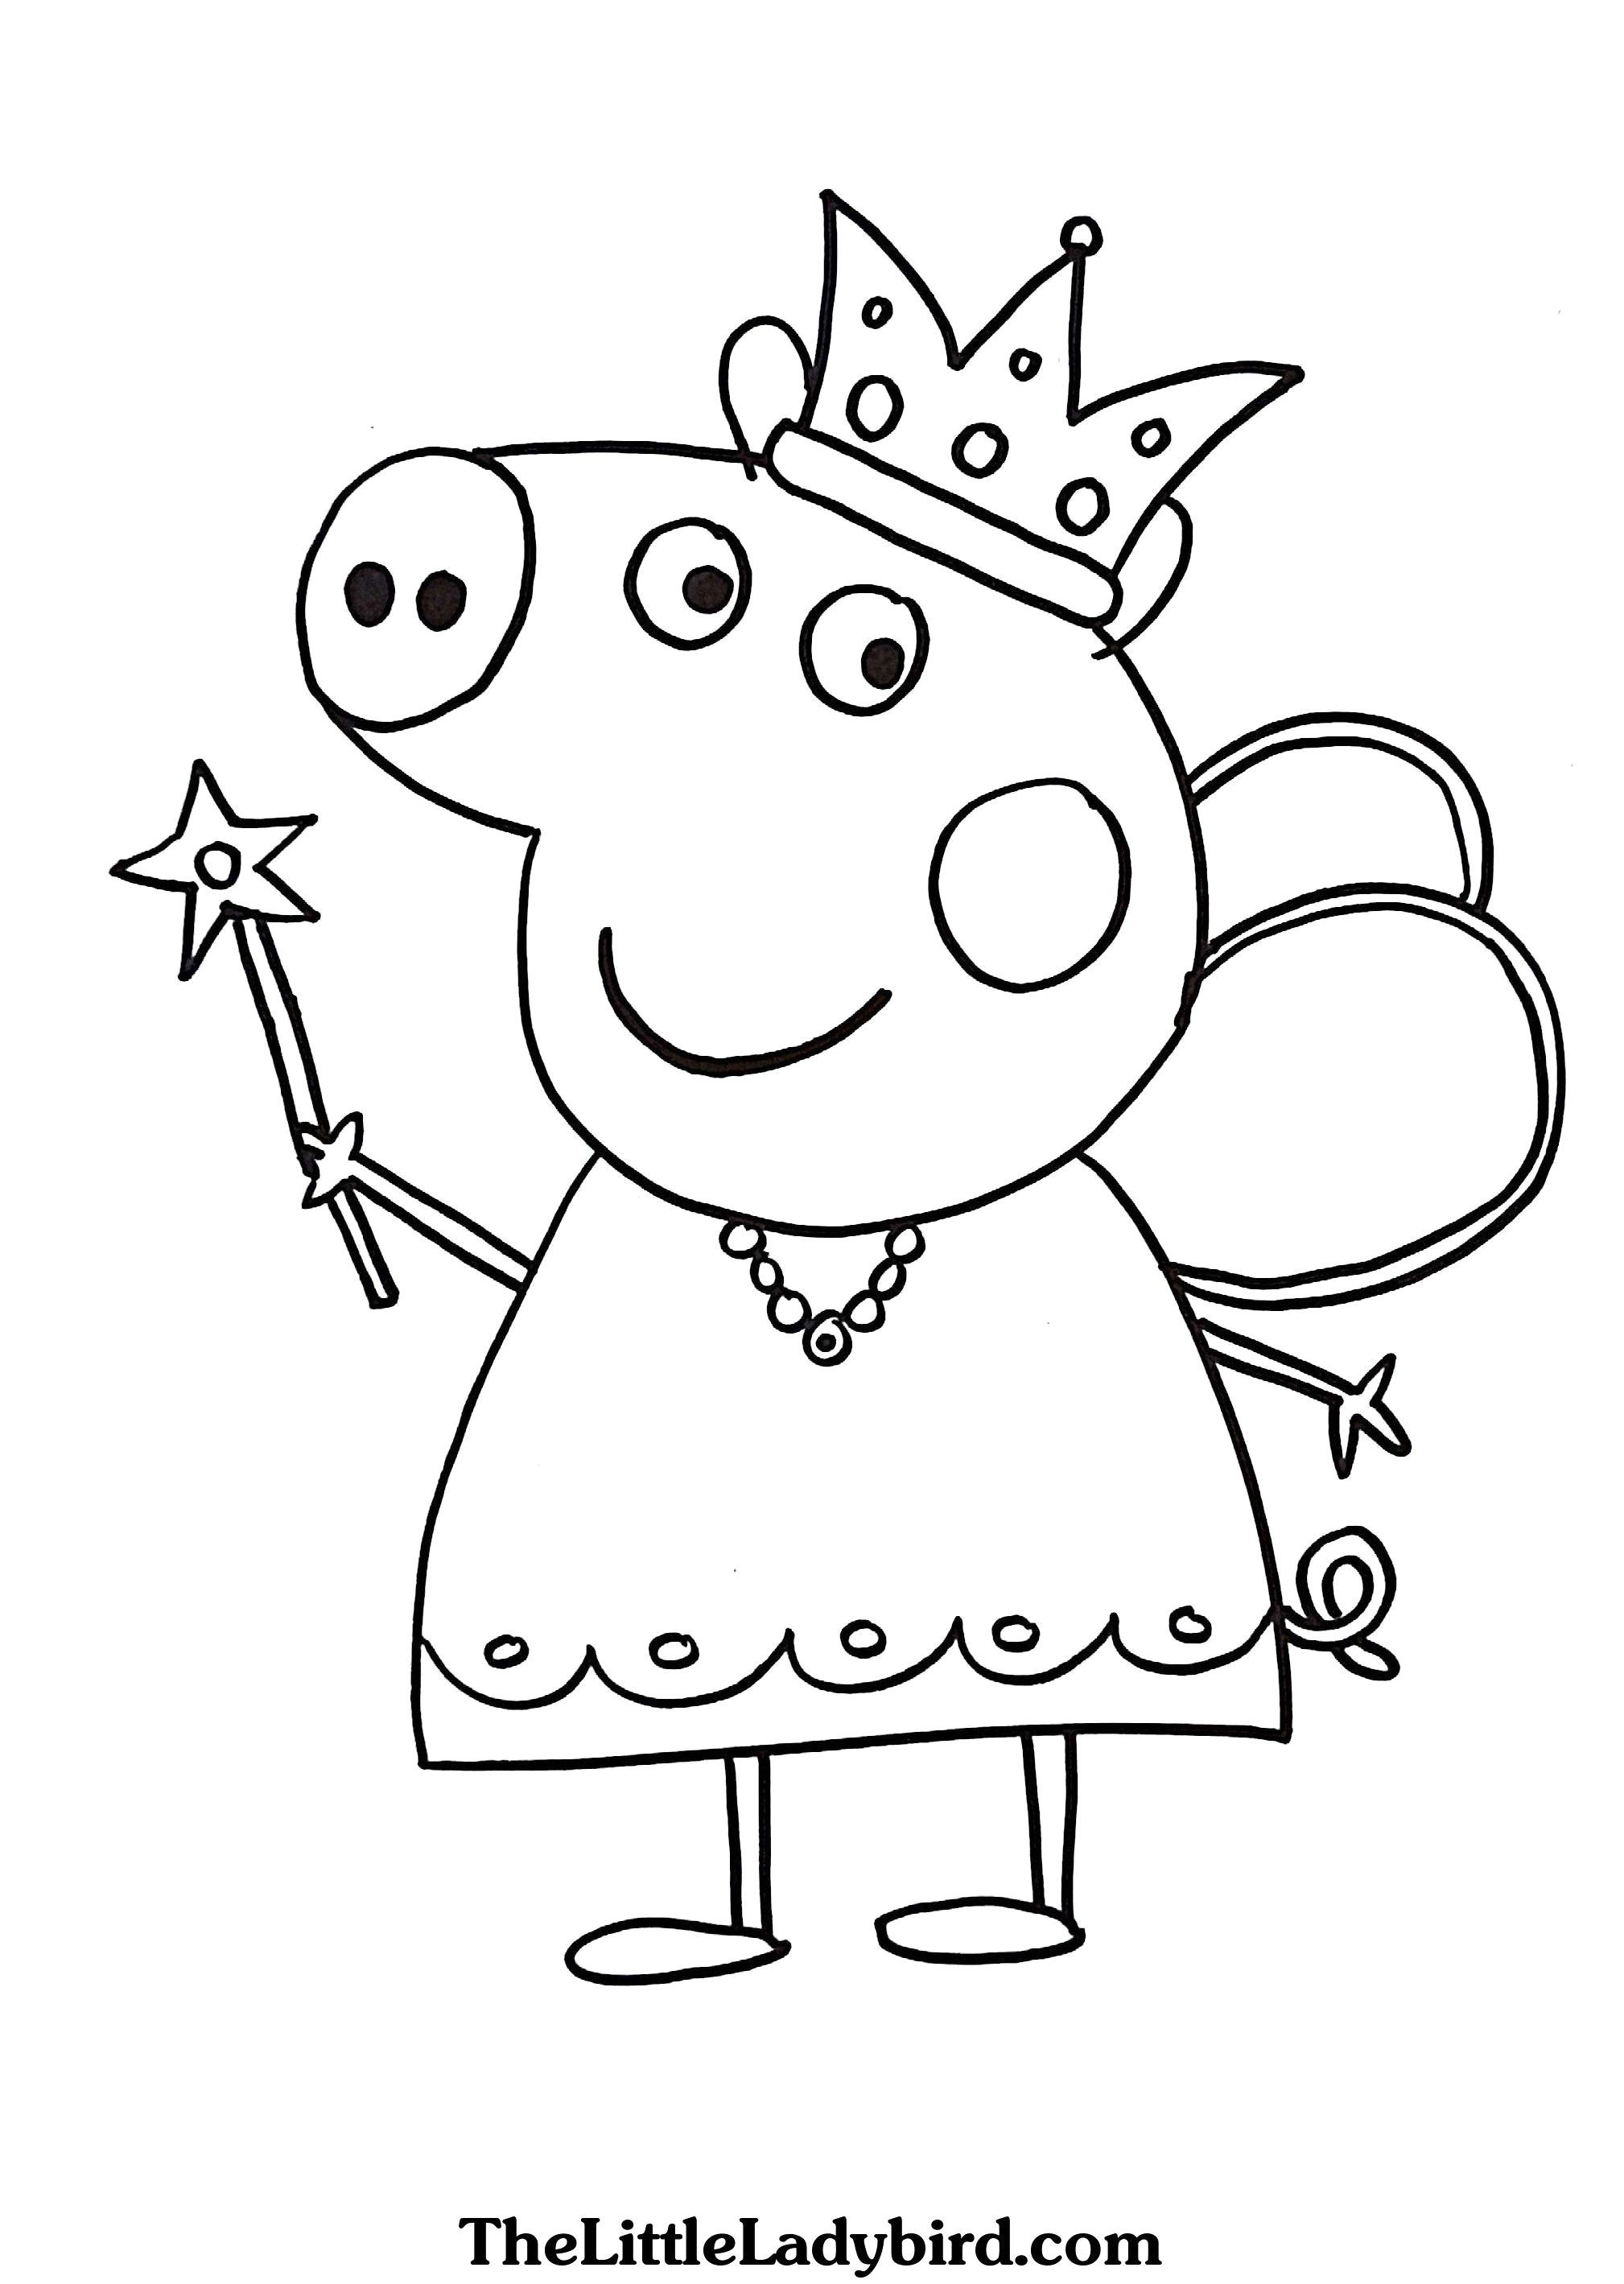 25 Marvelous Picture Of Pig Coloring Page With Images Peppa